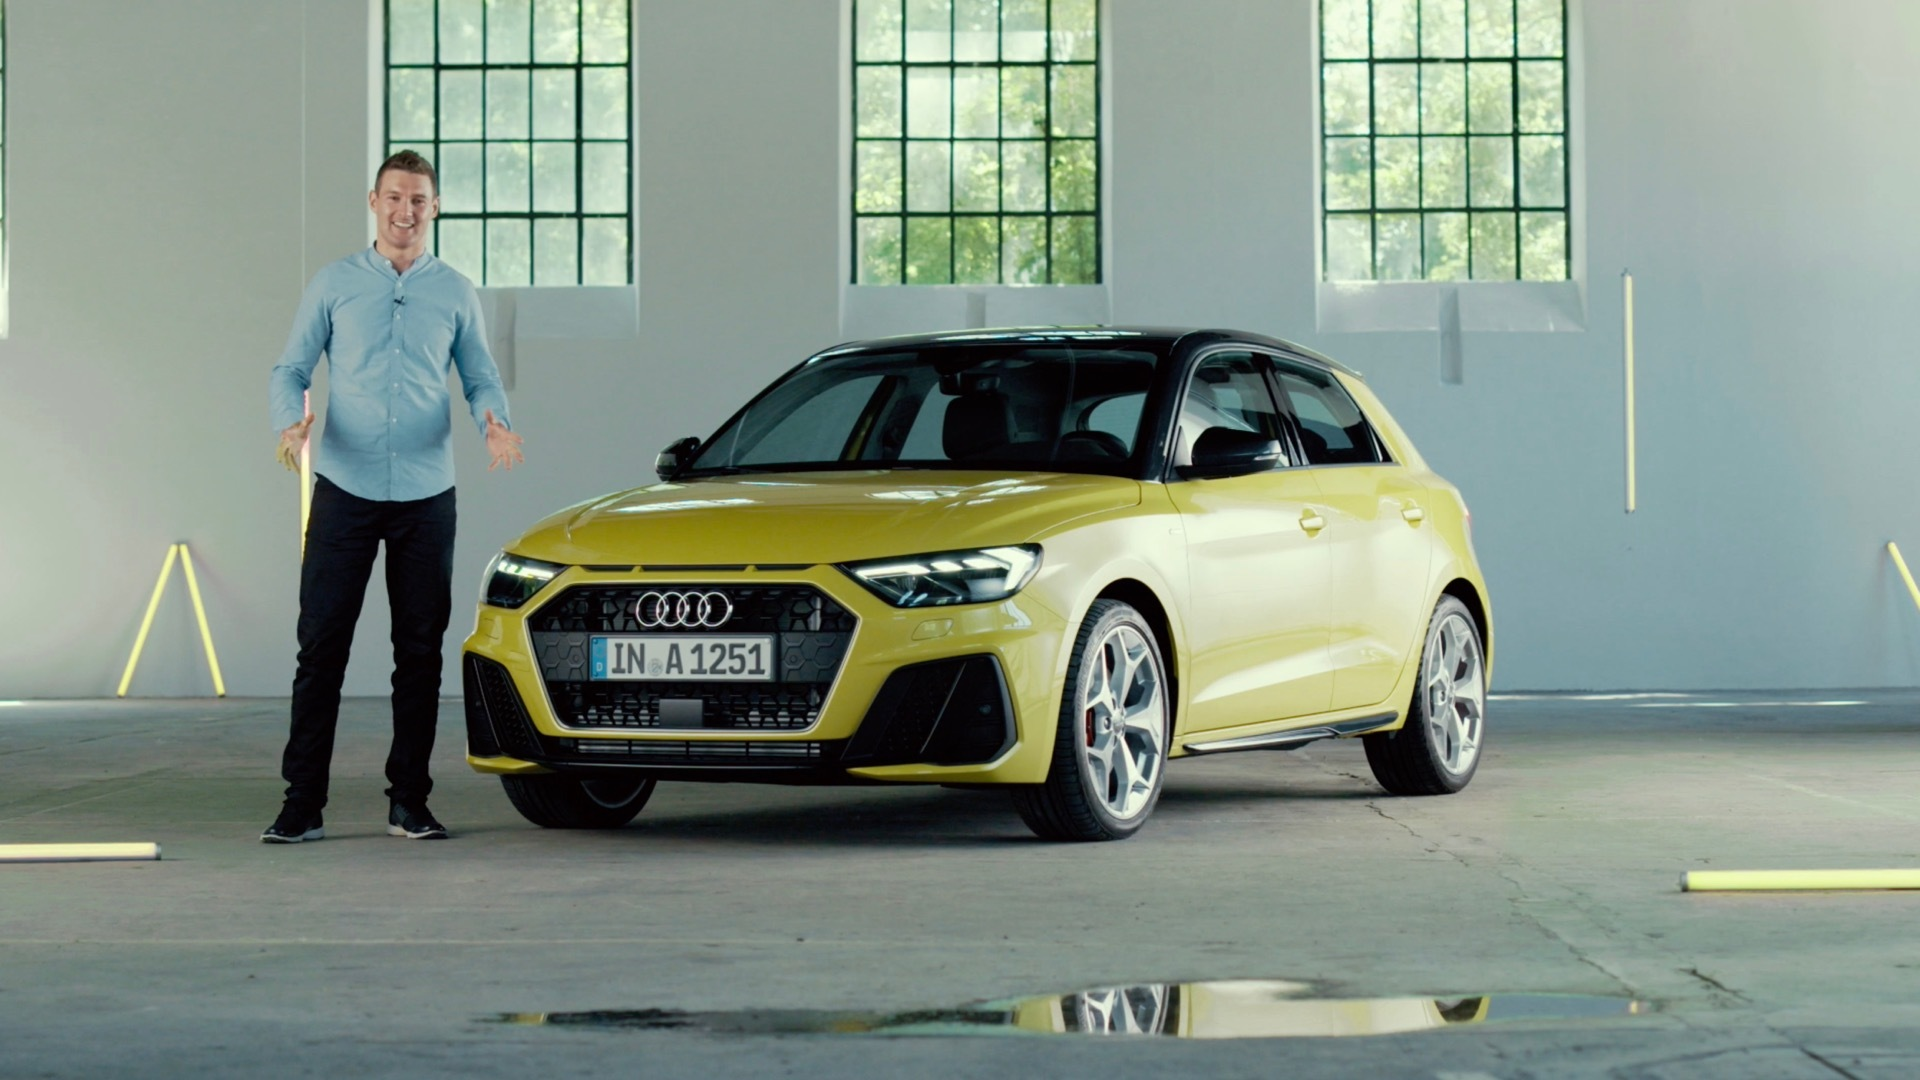 The Audi A1 Sportback in detail